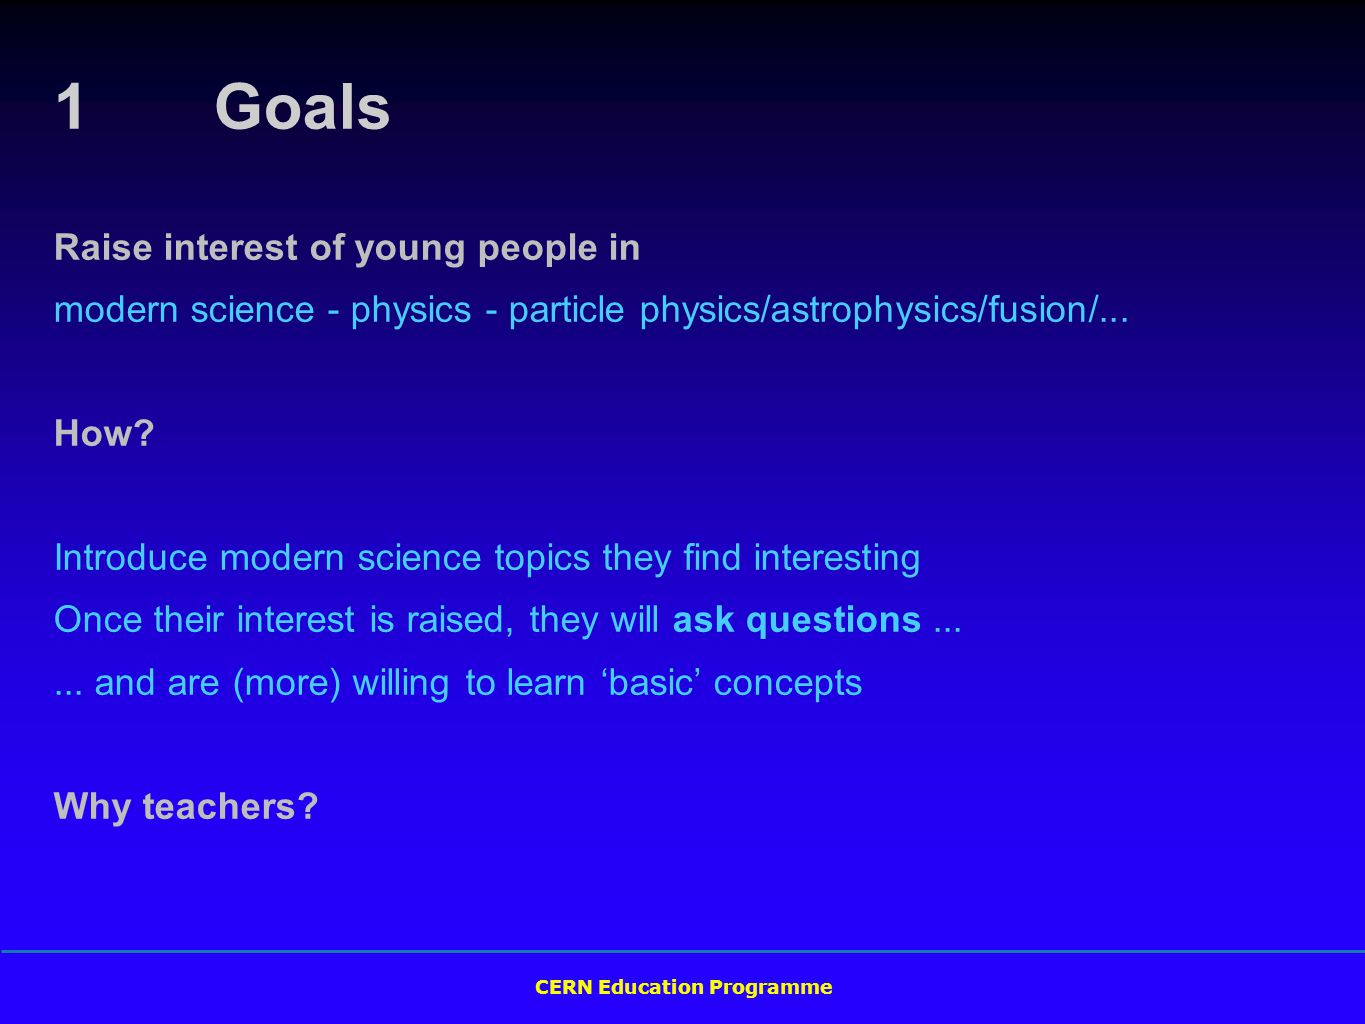 CERN Education Programme 1 Goals Raise interest of young people in modern science - physics - particle physics/astrophysics/fusion/...